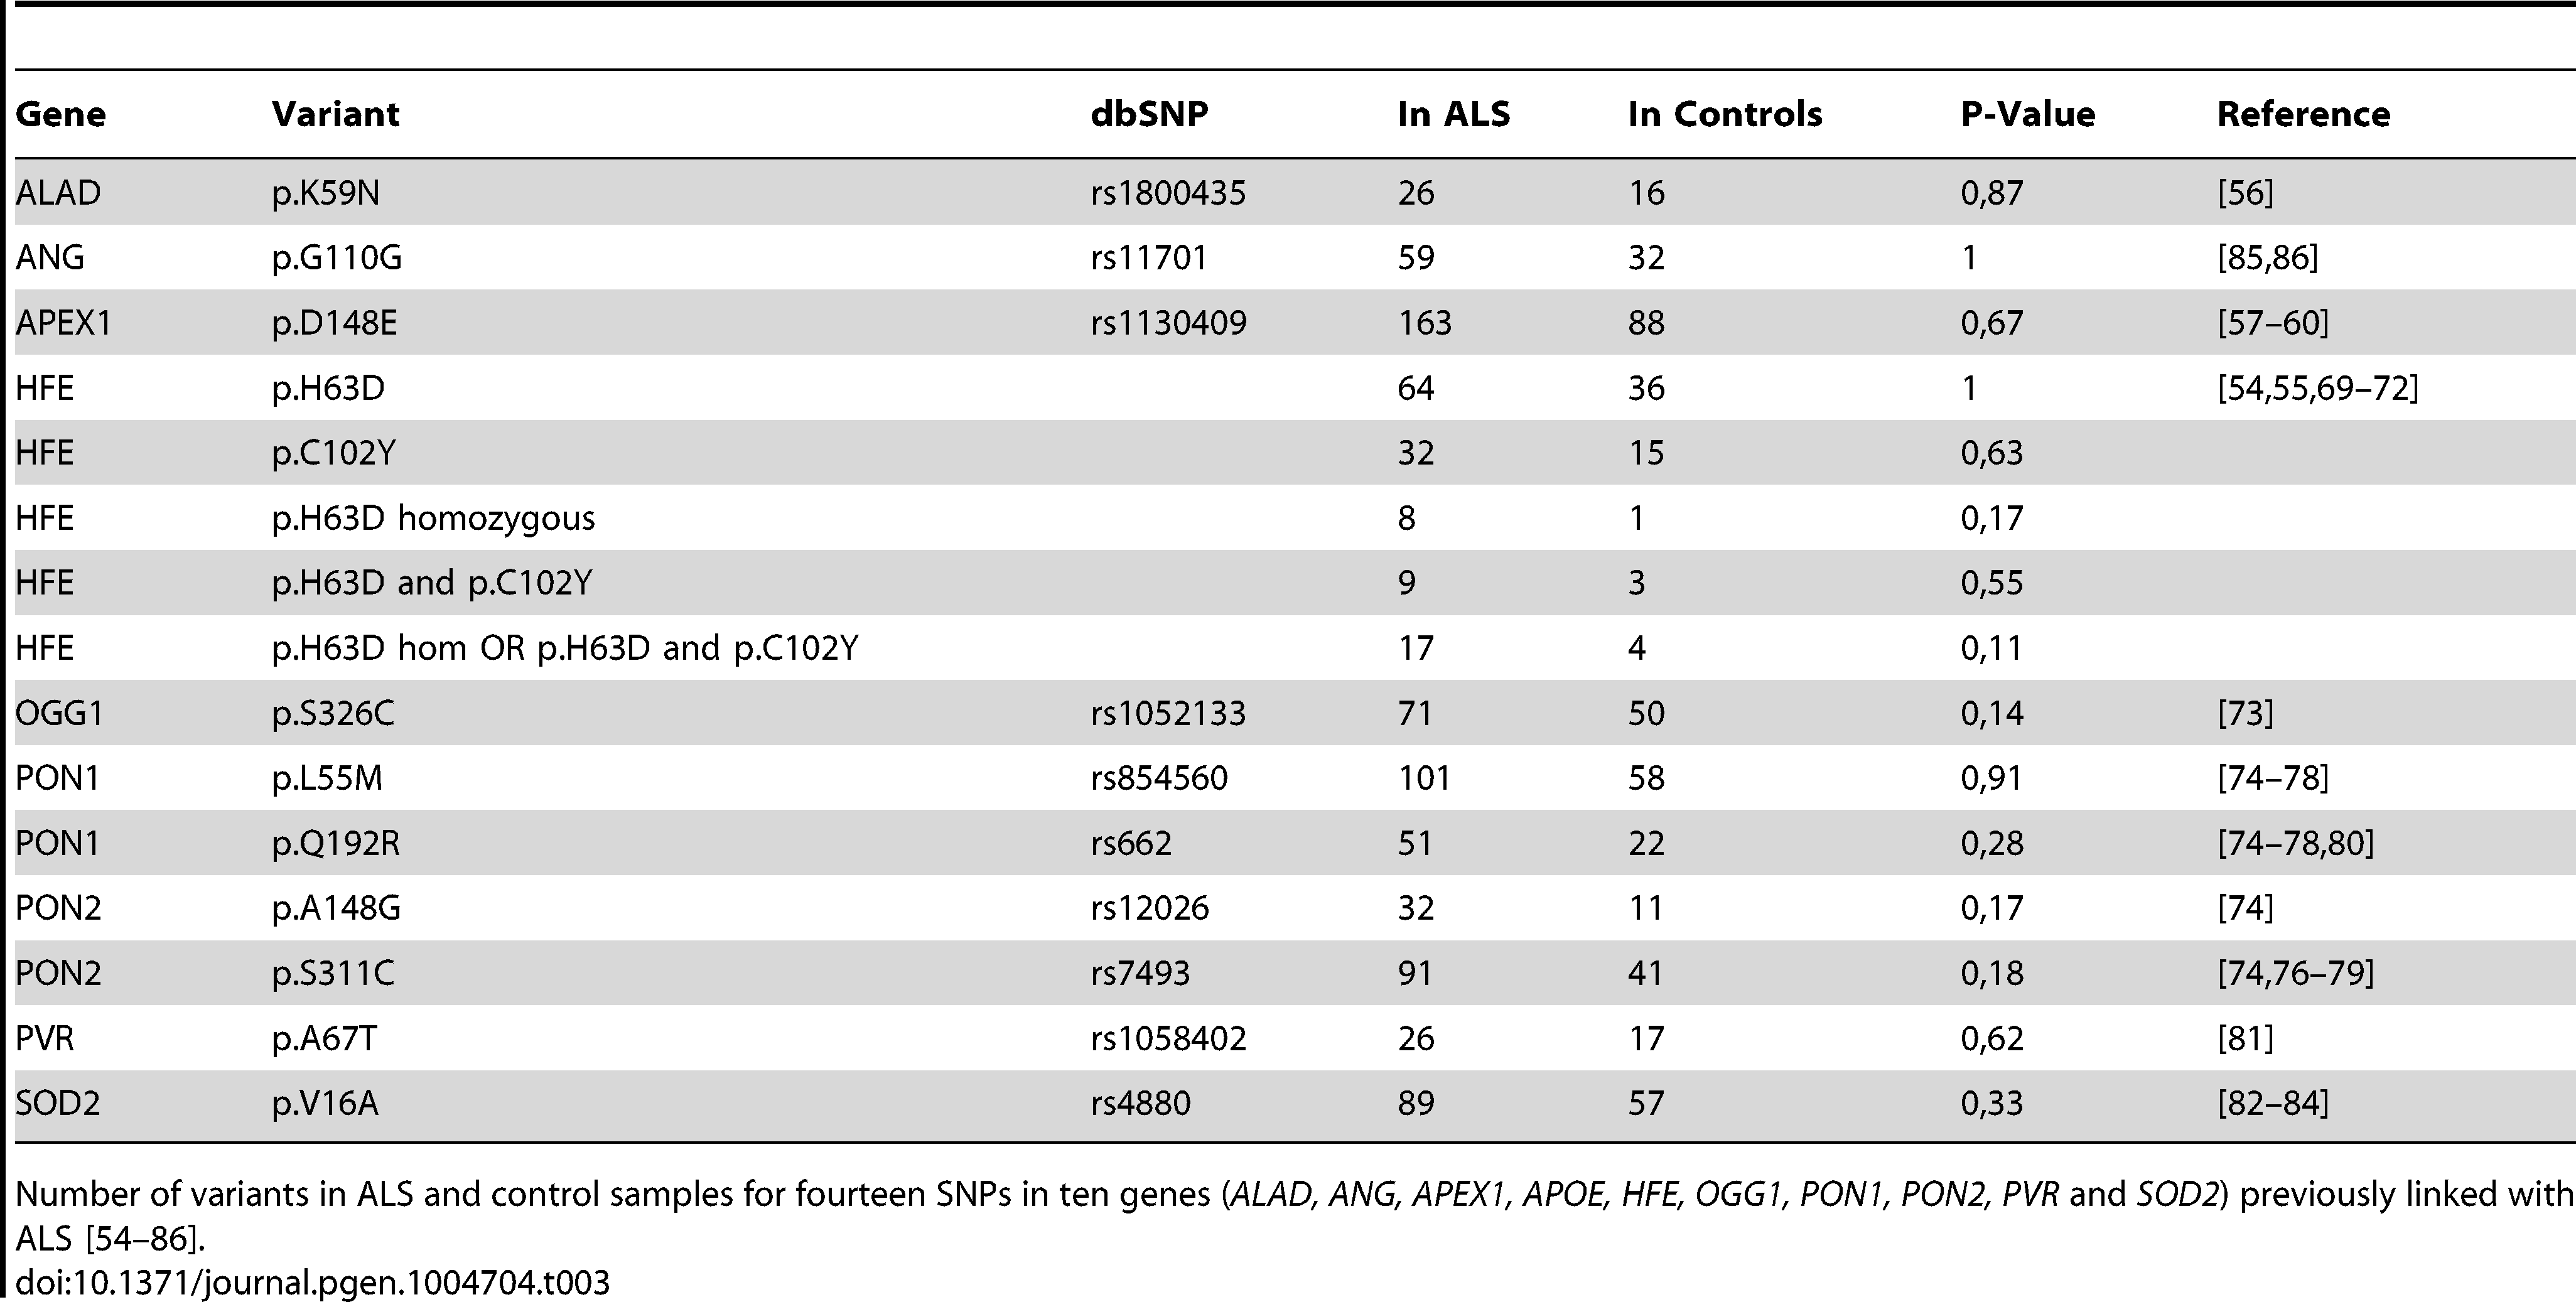 SNPs previously associated with ALS.